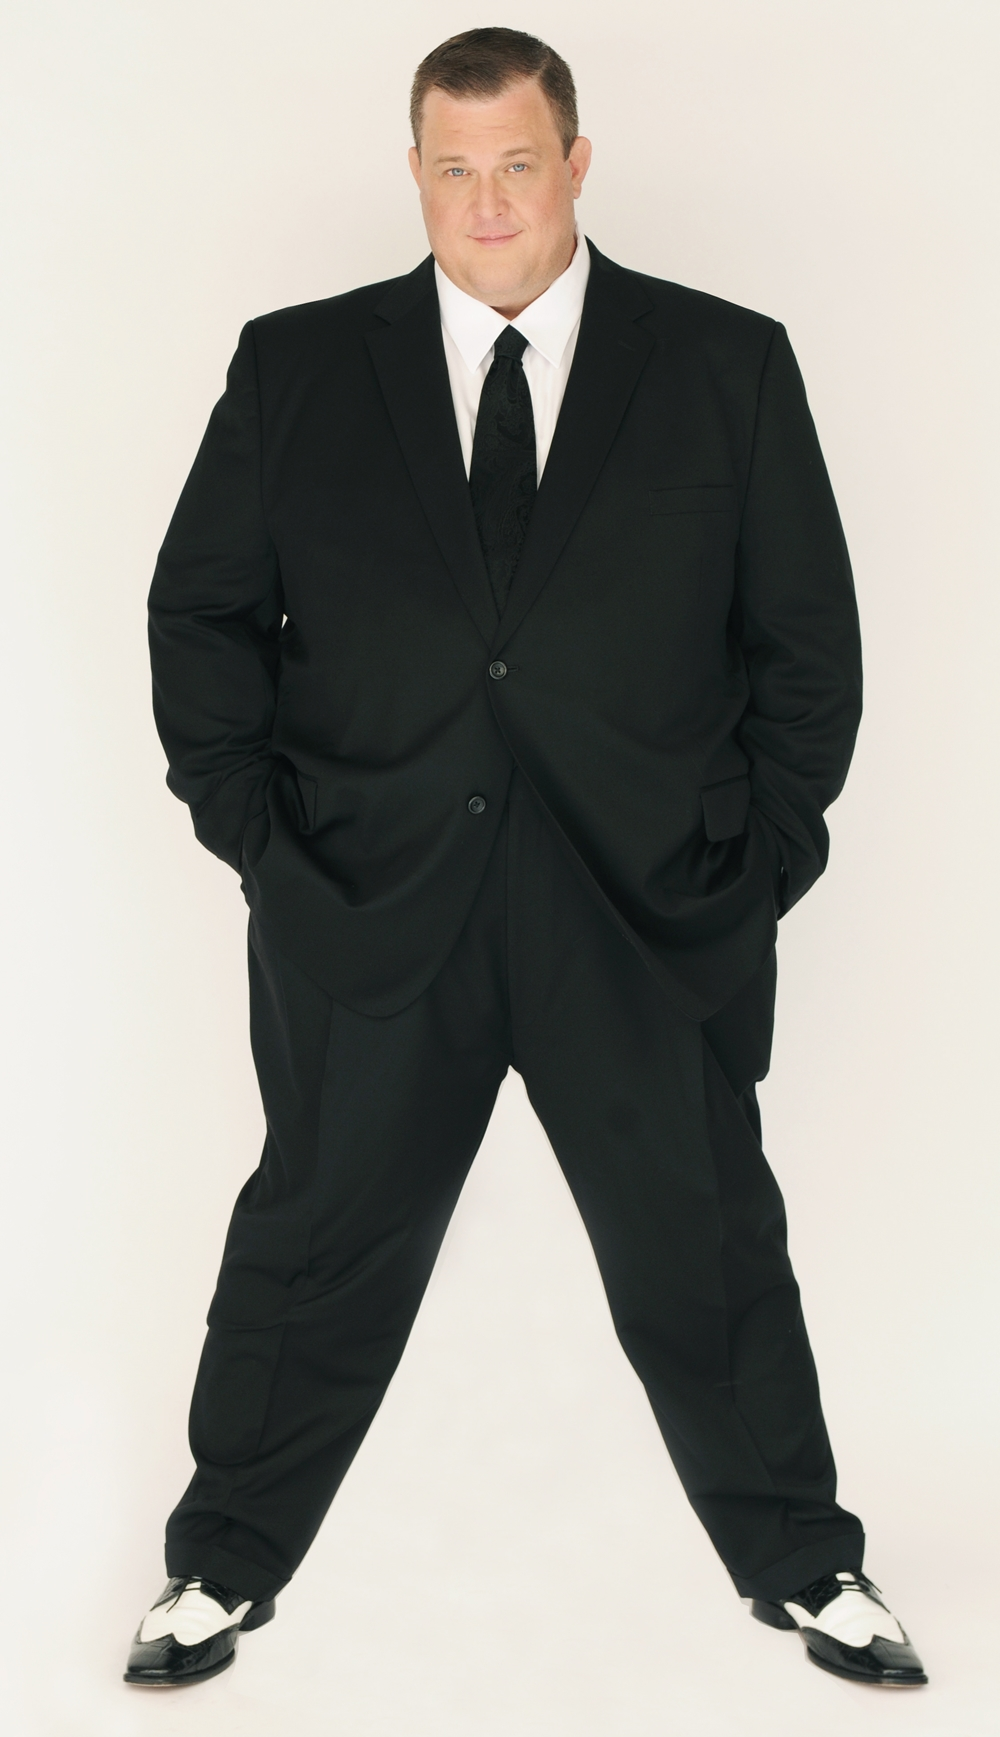 Stand Up Comedian, Billy Gardell